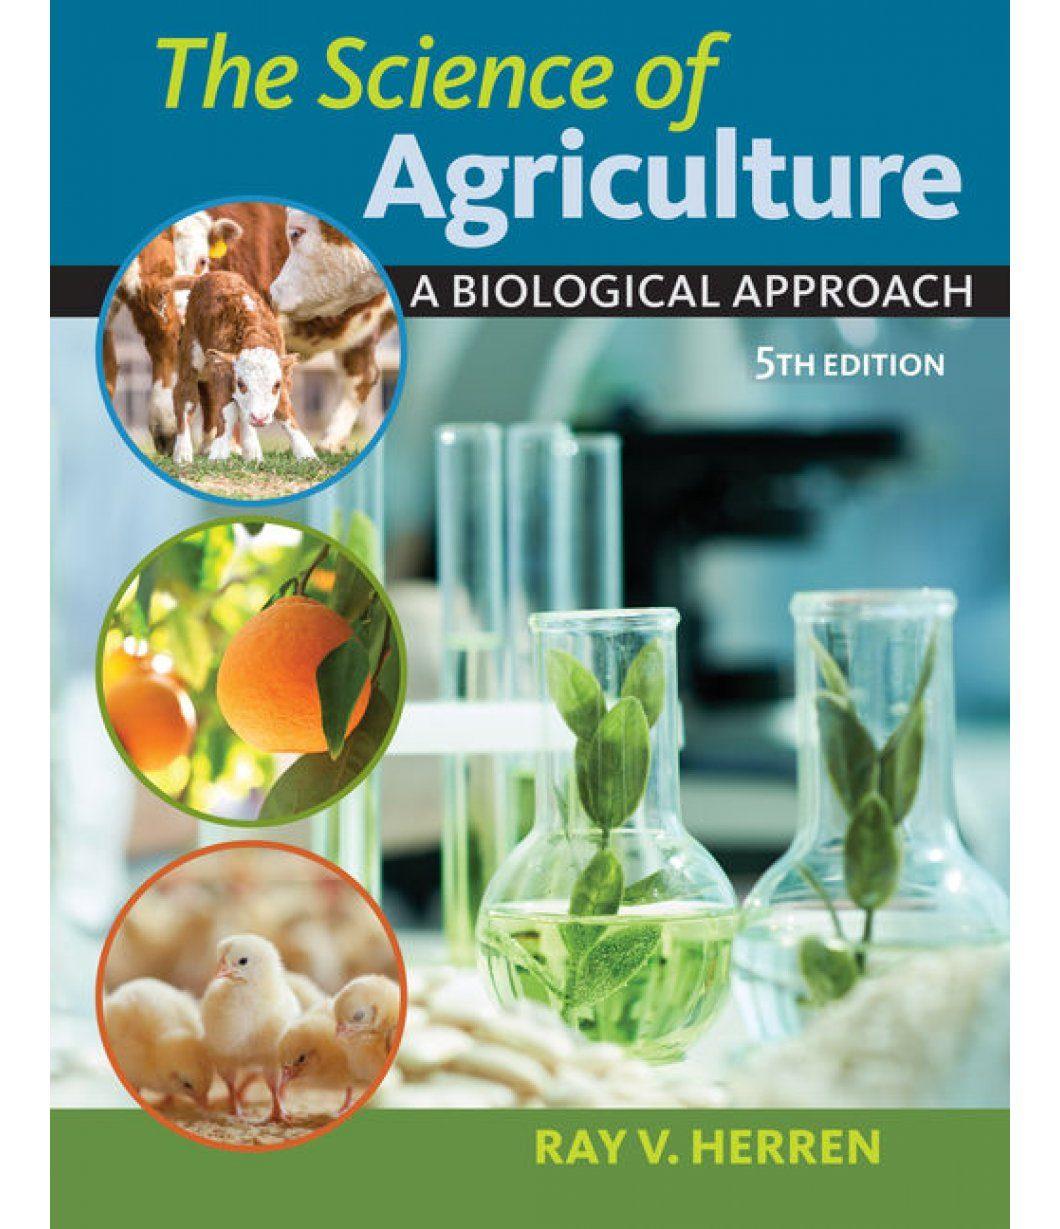 The Science of Agriculture